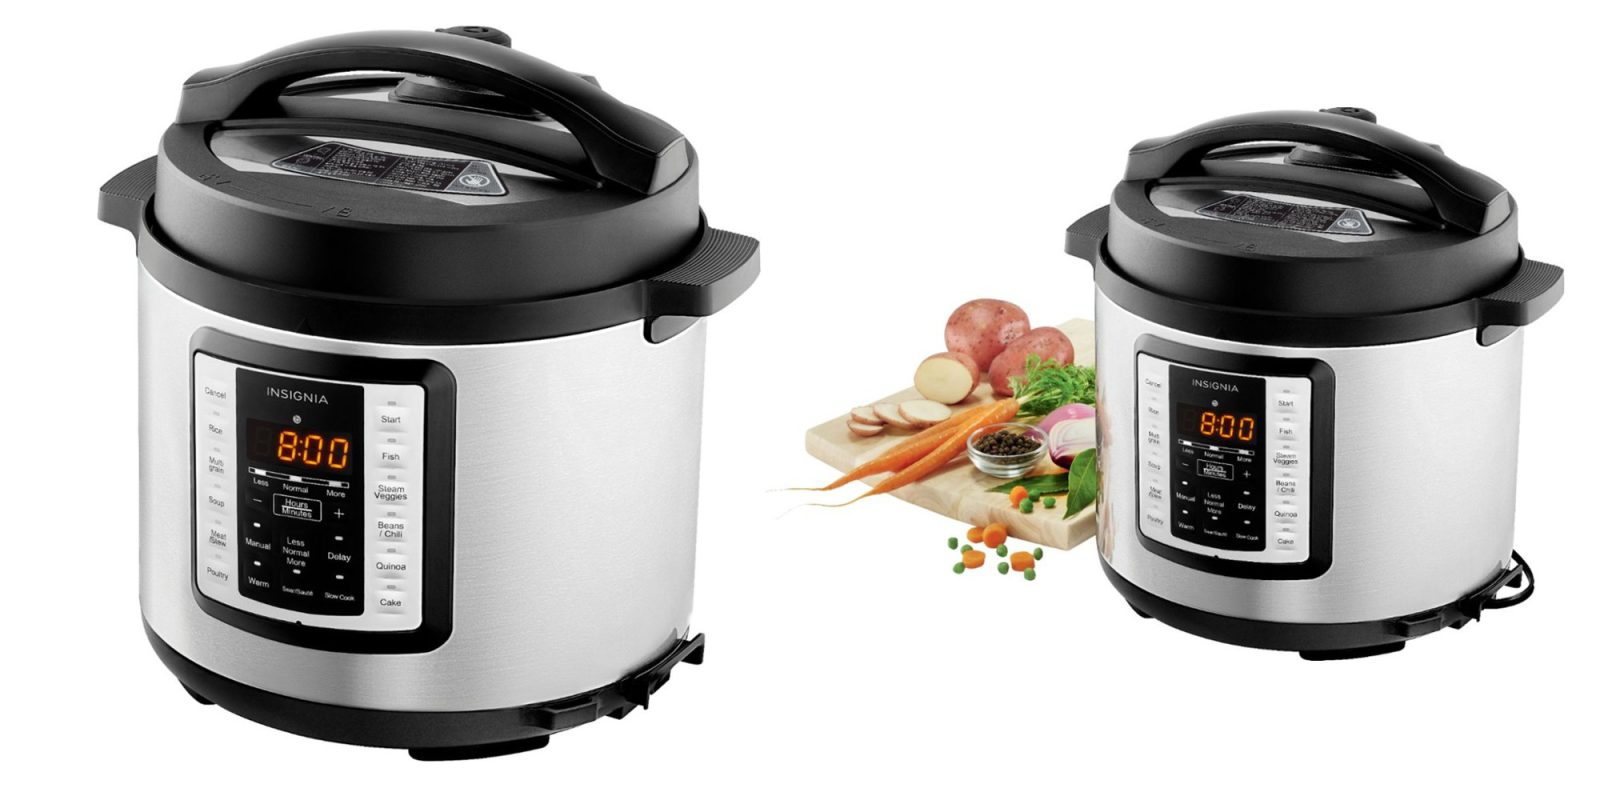 This 6-quart multi-mode pressure cooker is down to just $30 today (Reg. $60+)